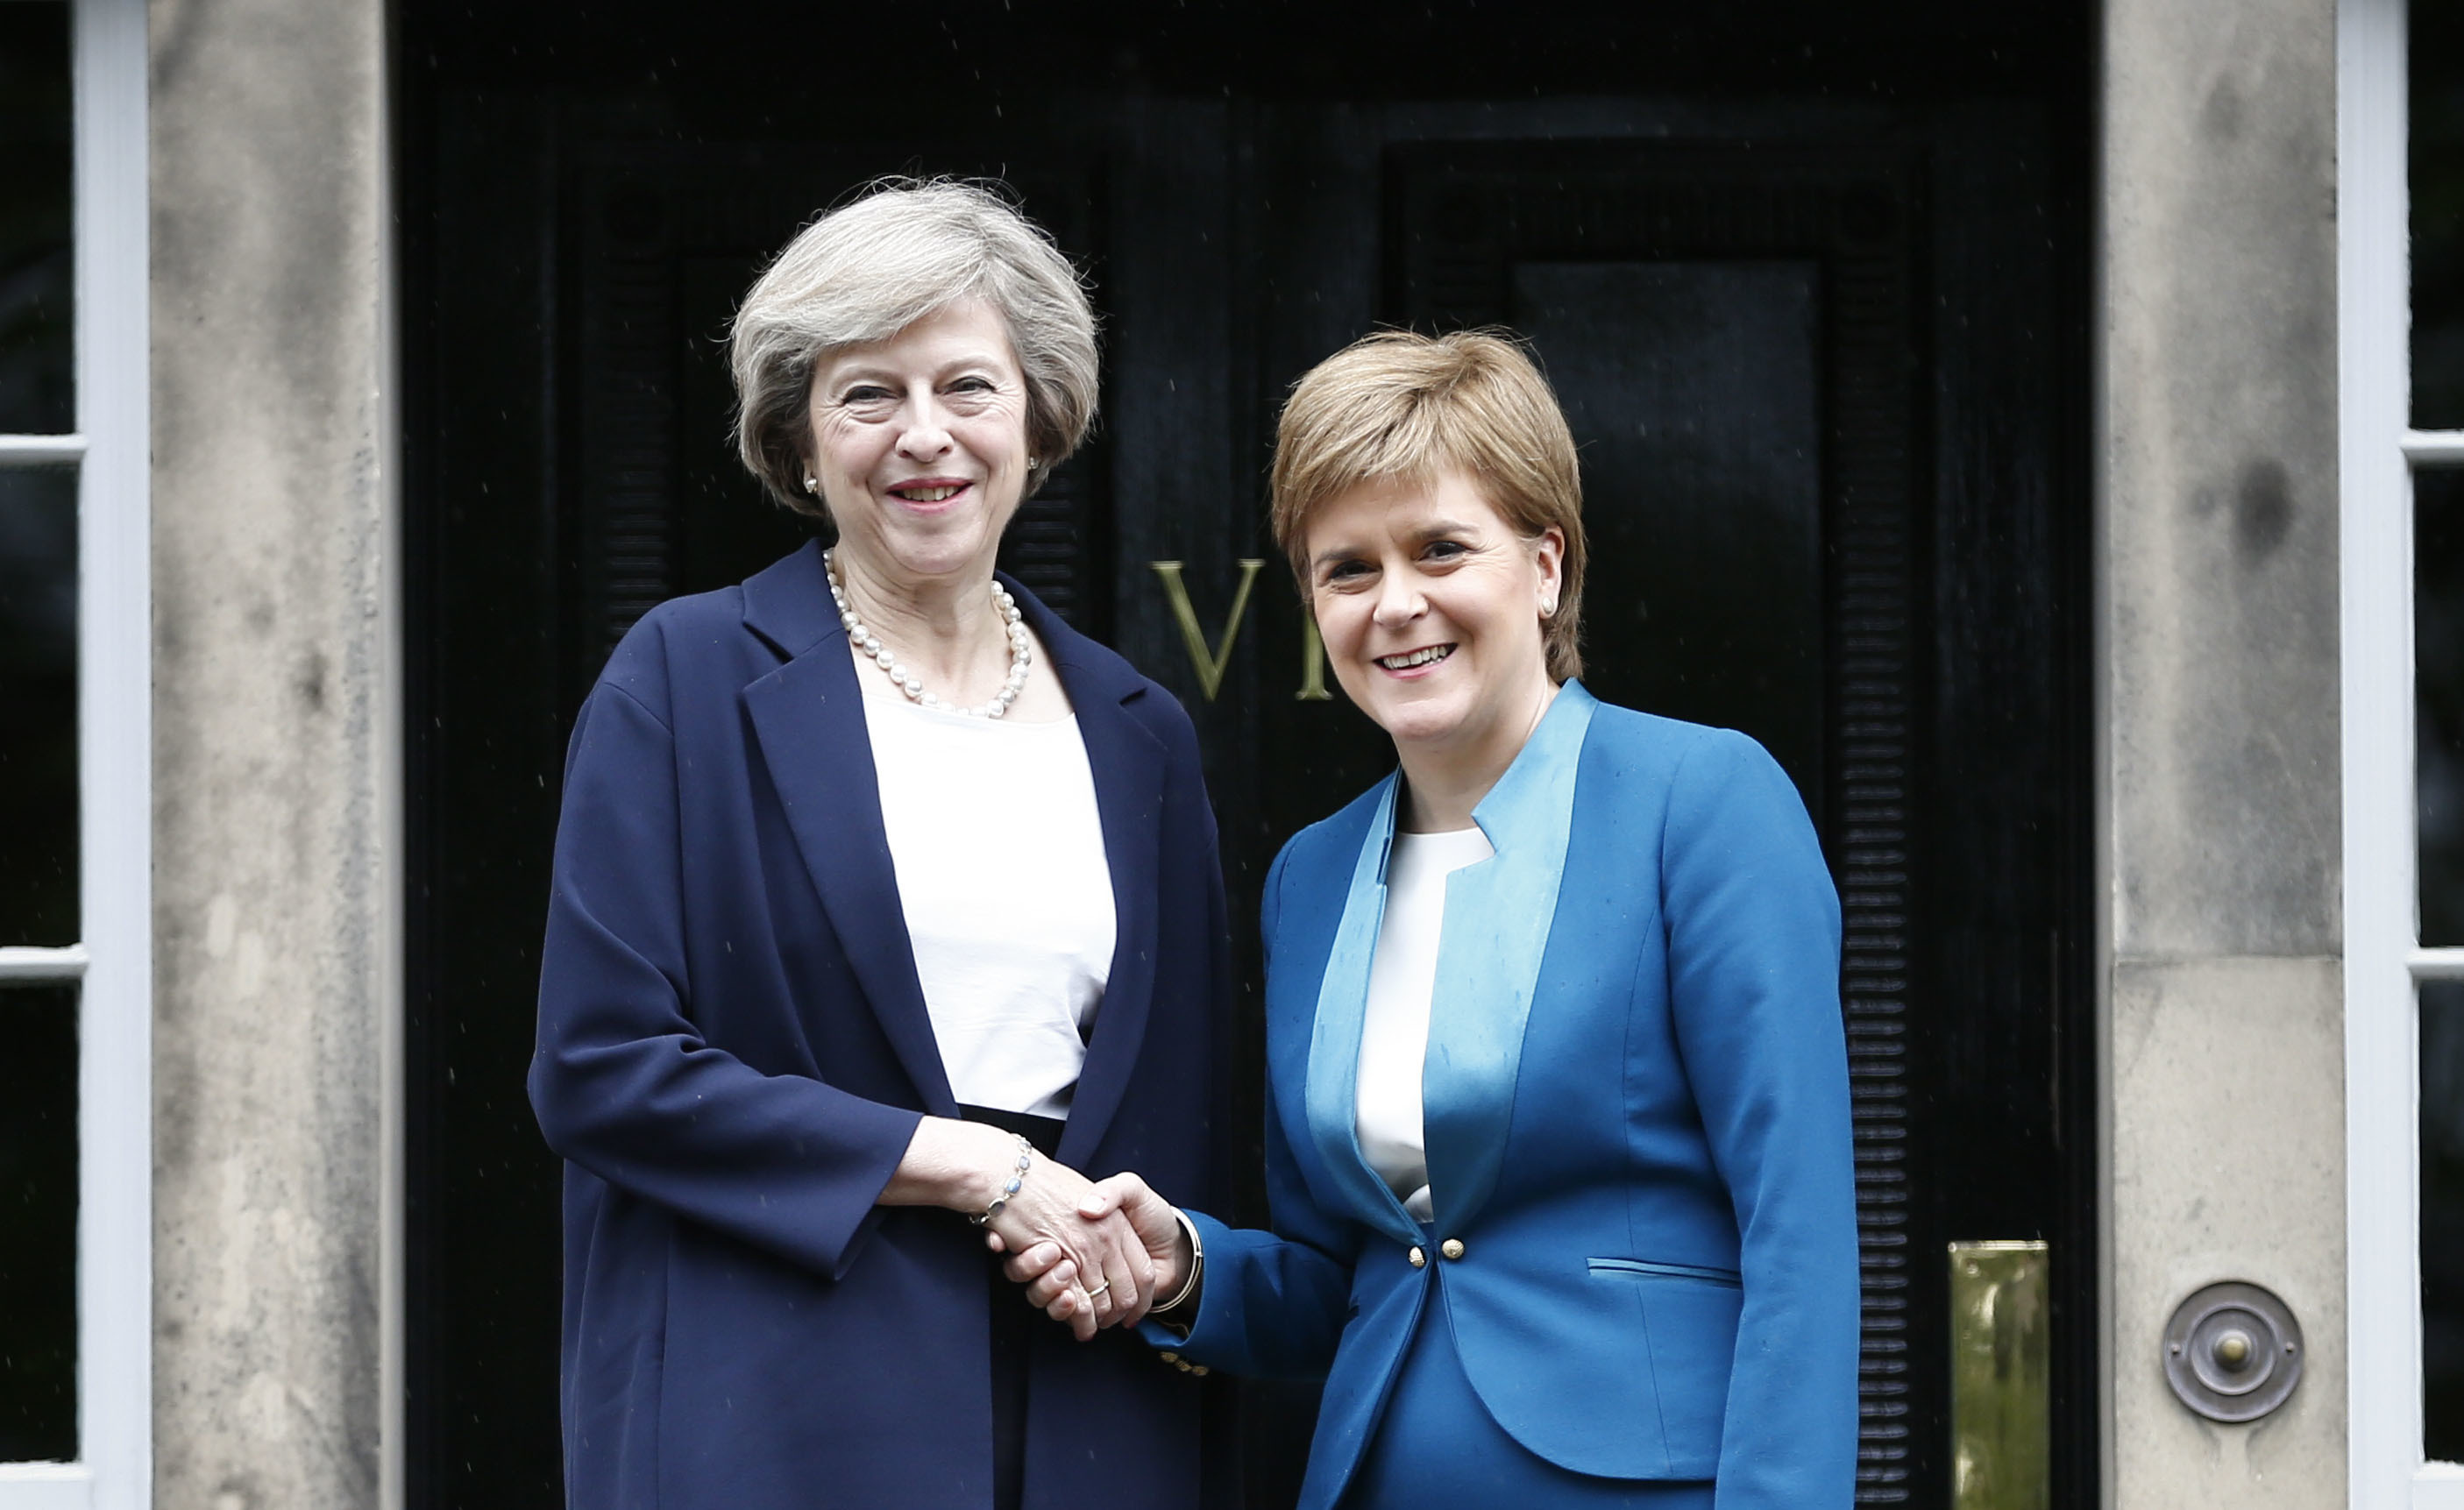 Prime Minister Theresa May and First Minister Nicola Sturgeon on the steps of Bute House.